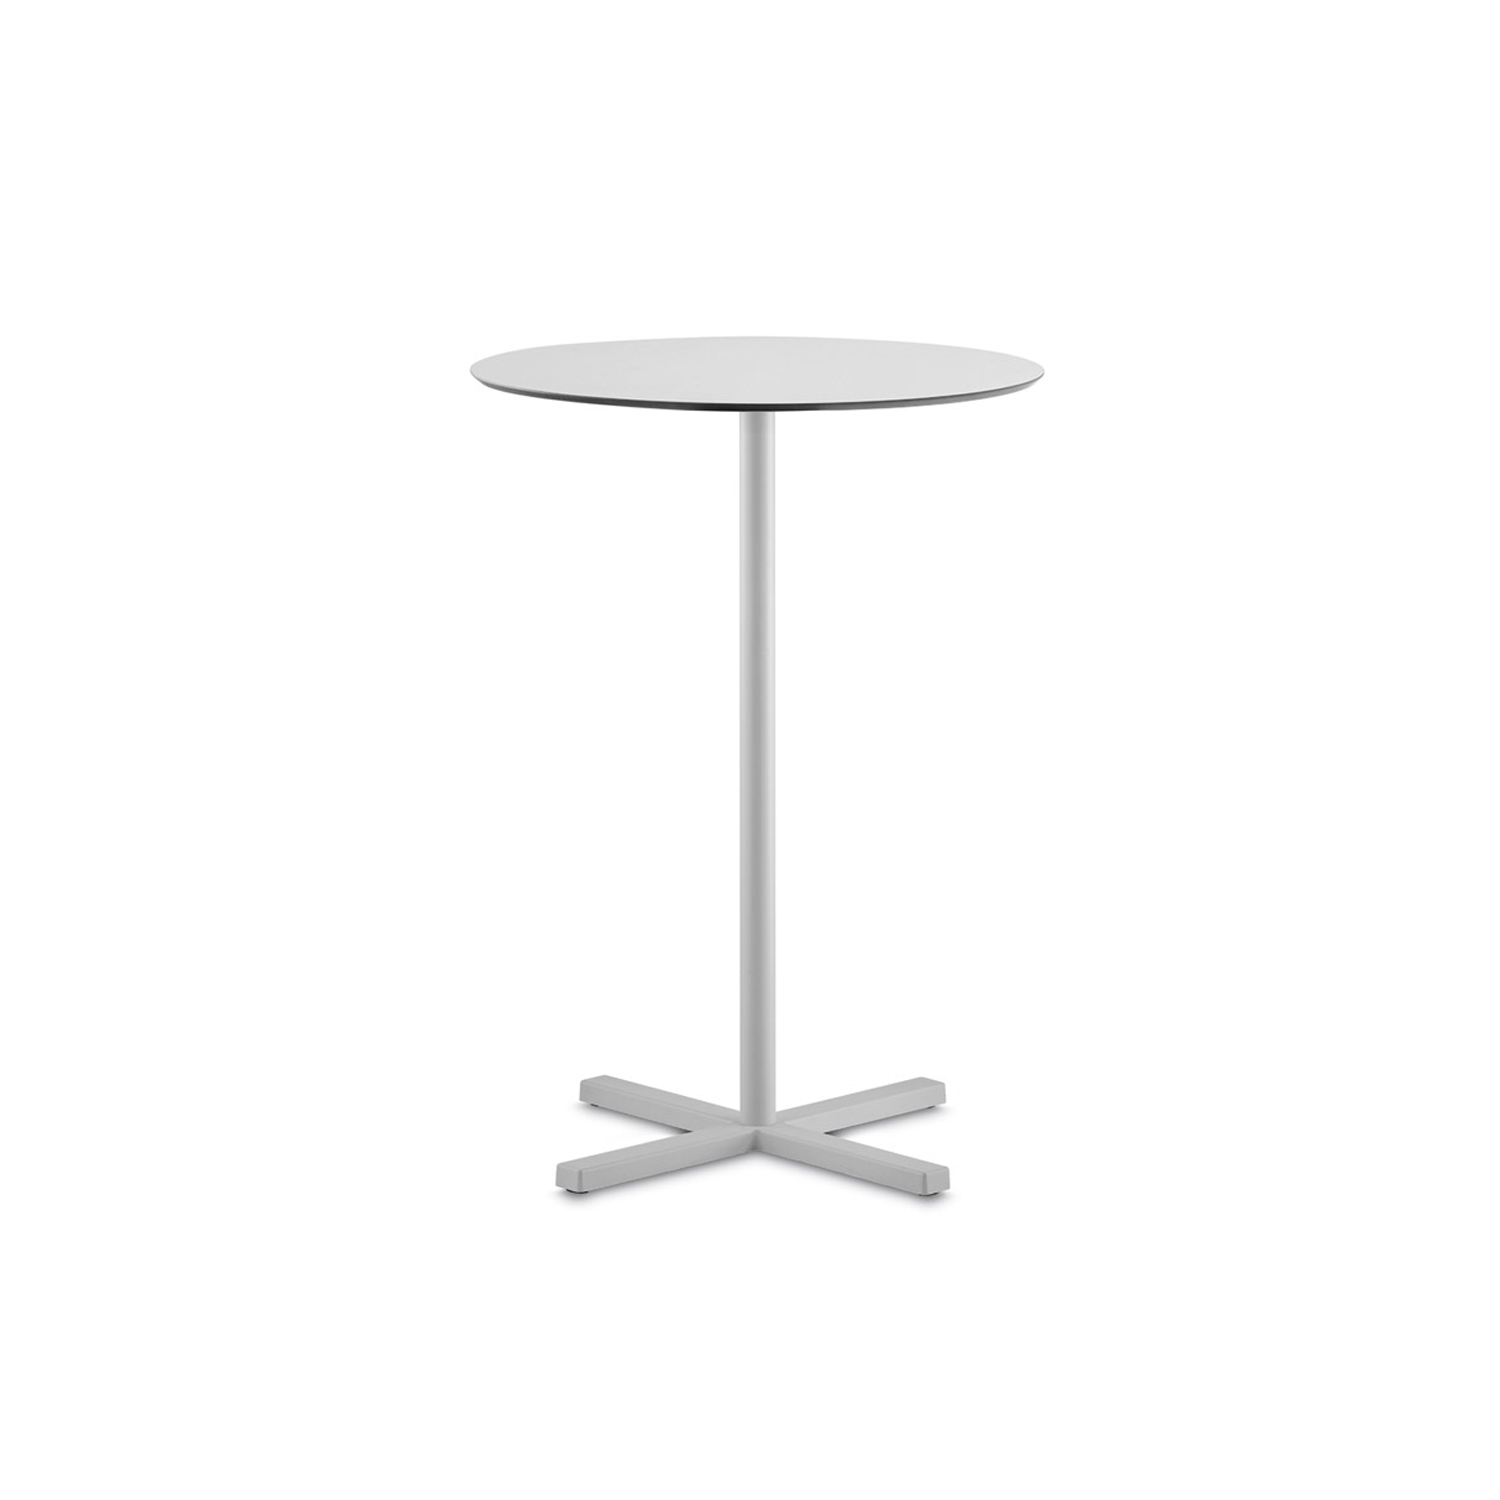 pedrali-bold-table-base-standing